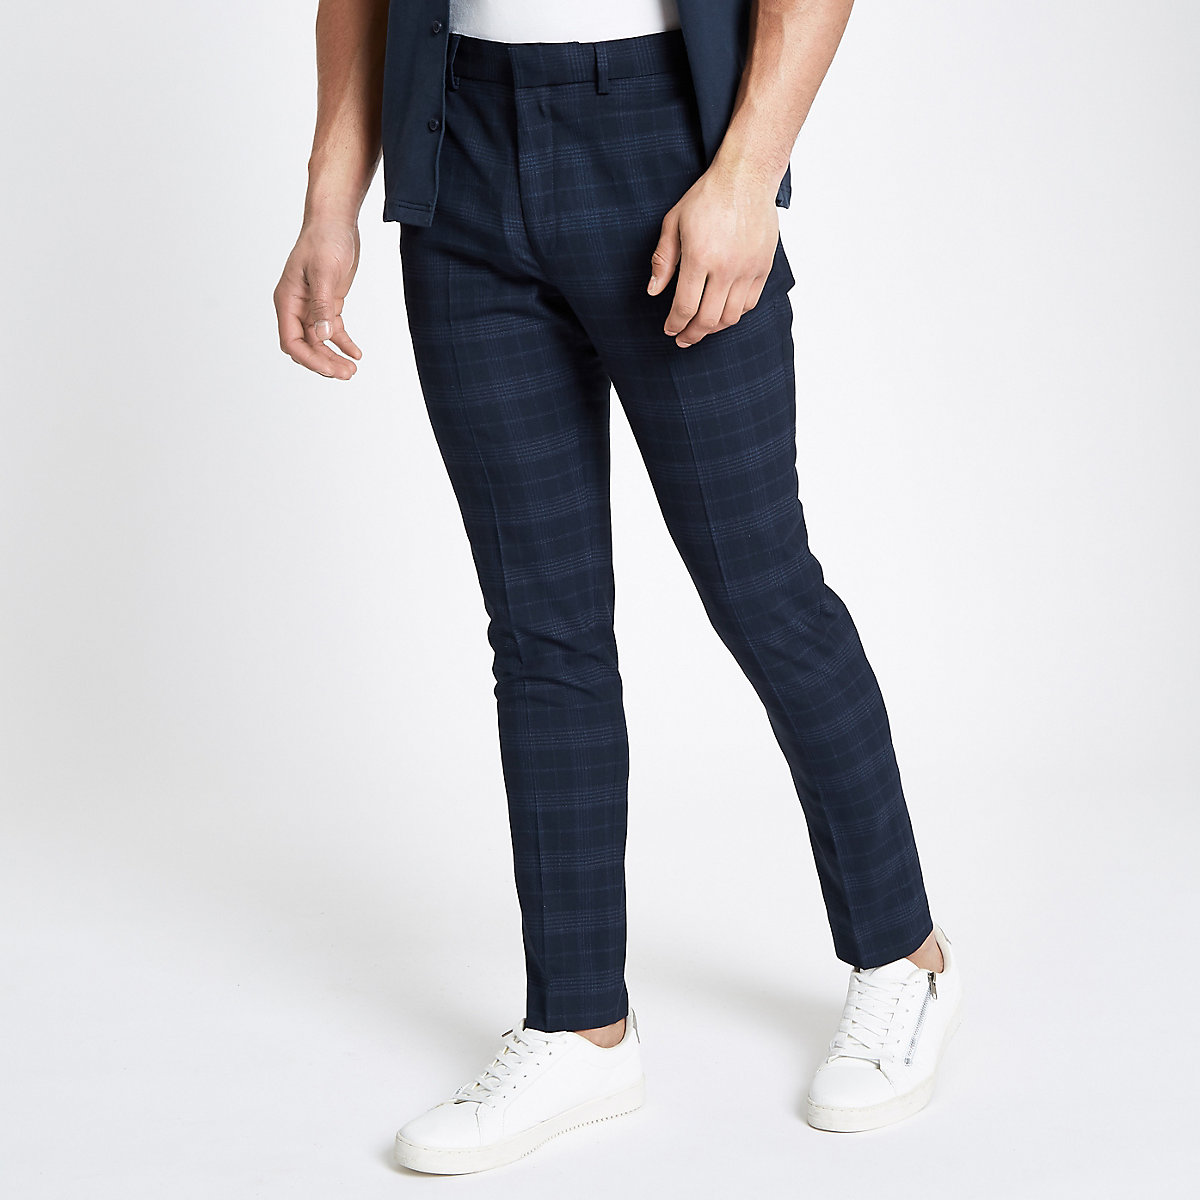 Blue check smart skinny pants